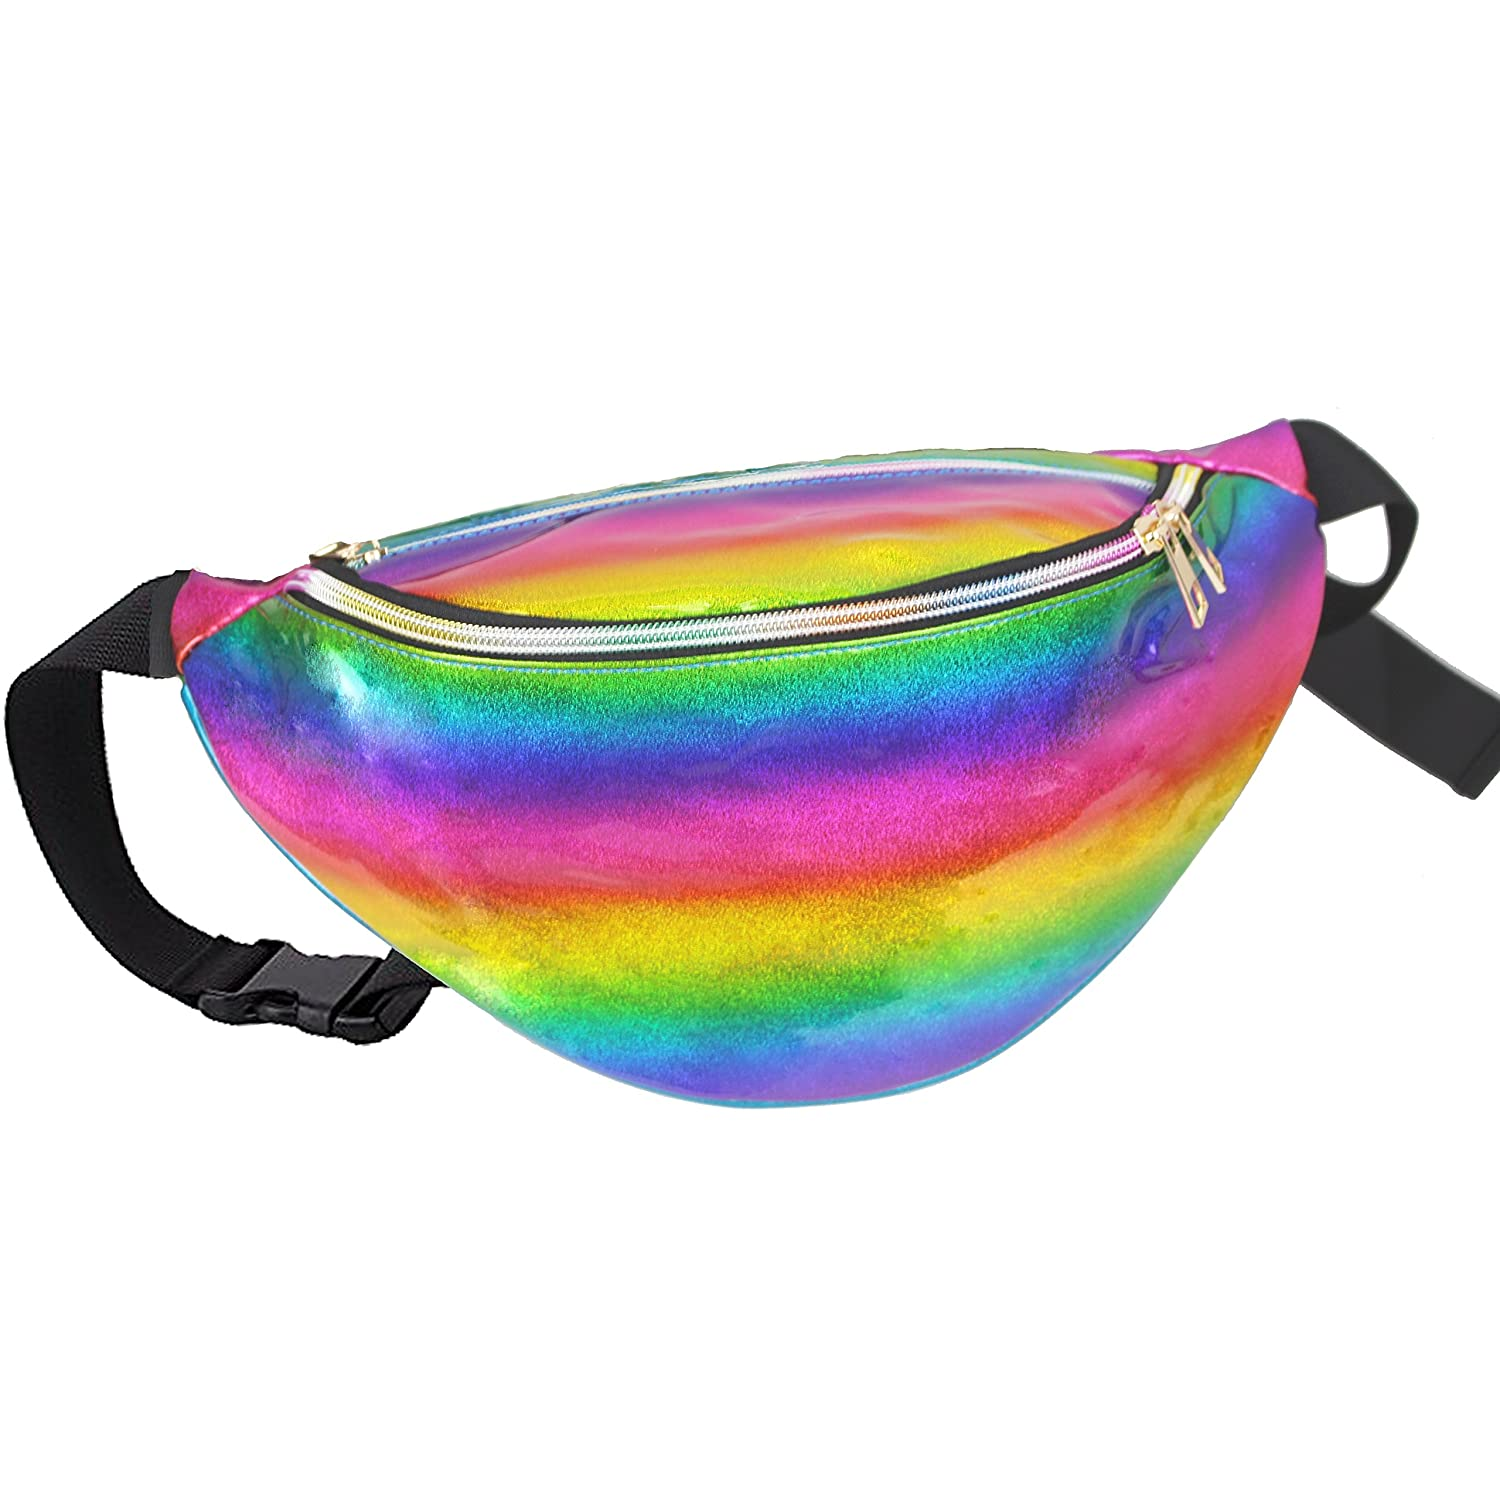 Festival Travel A AIFAMY Holographic Fanny Pack 3D Waist Pocket Funny Gag Gifts for Rave Party